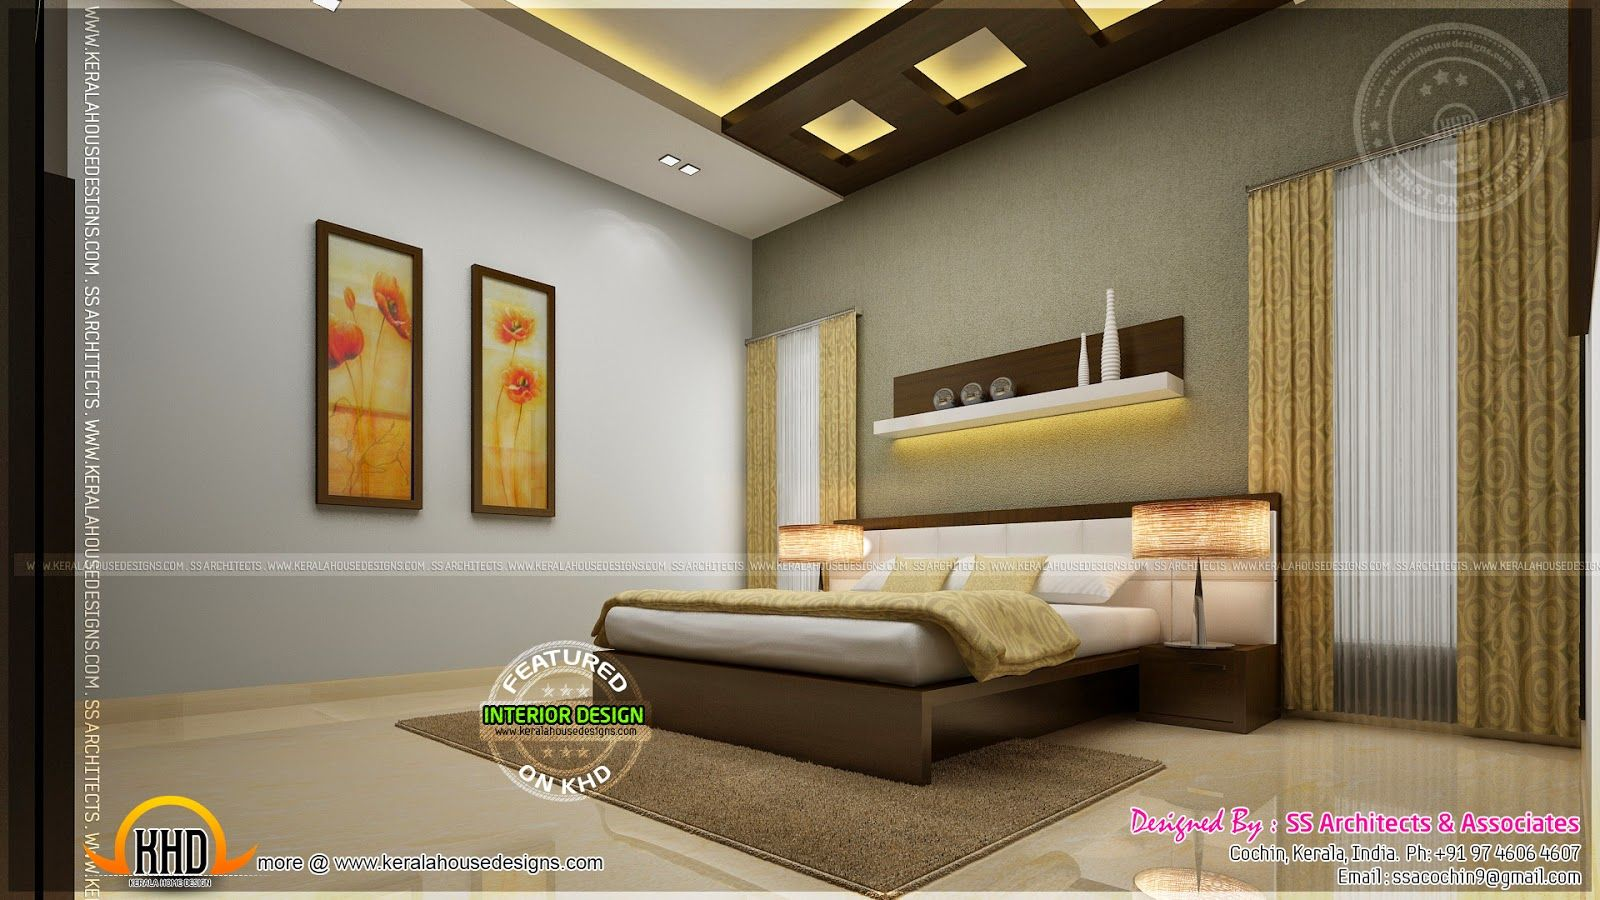 Indian master bedroom interior design google search for Bed interior design picture